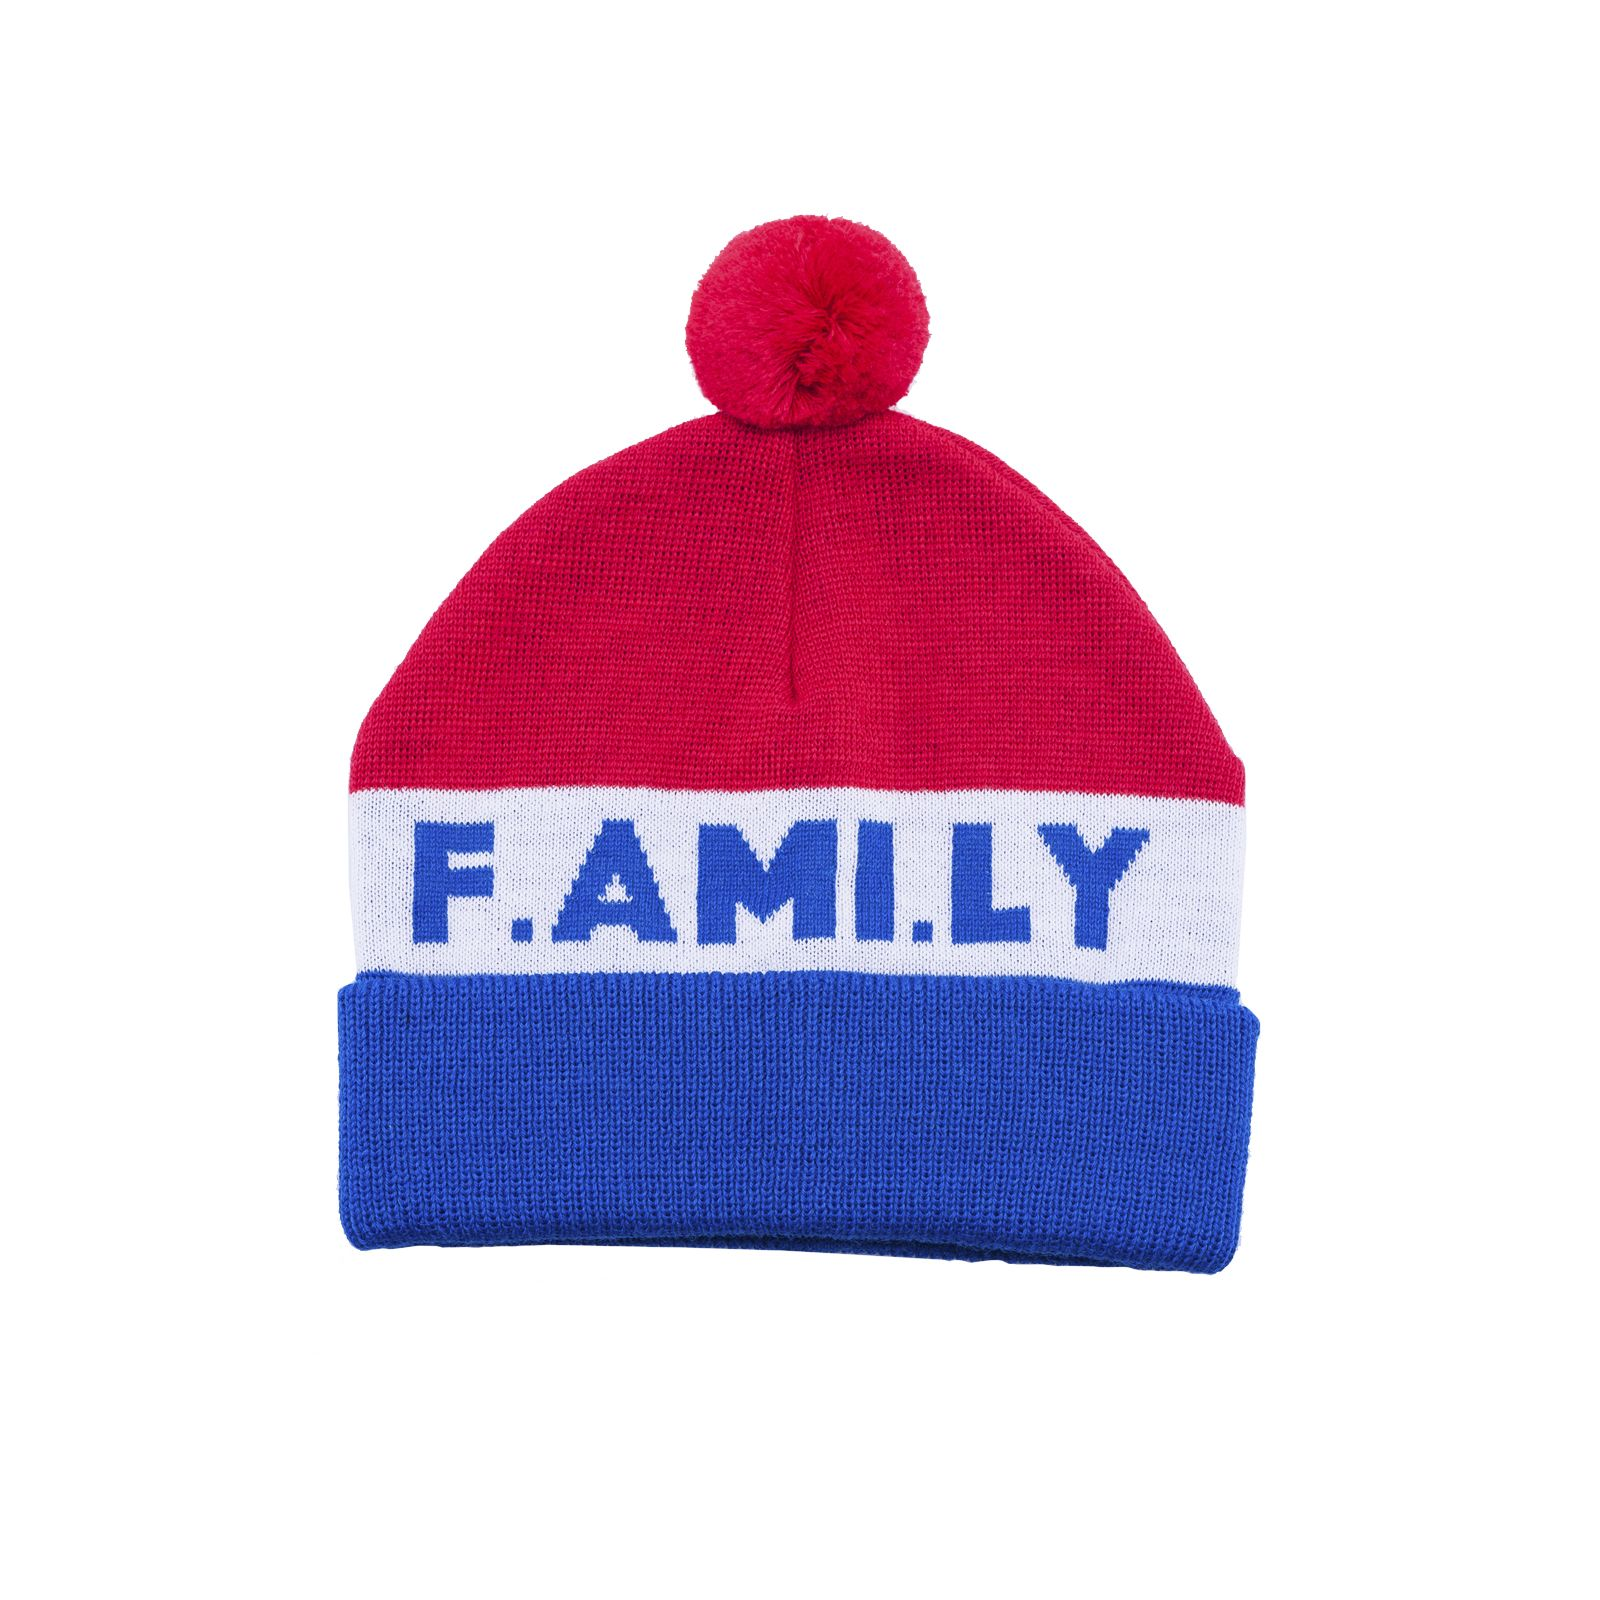 Ami Alexandre Mattiussi f.ami. ly Knitted Beanie